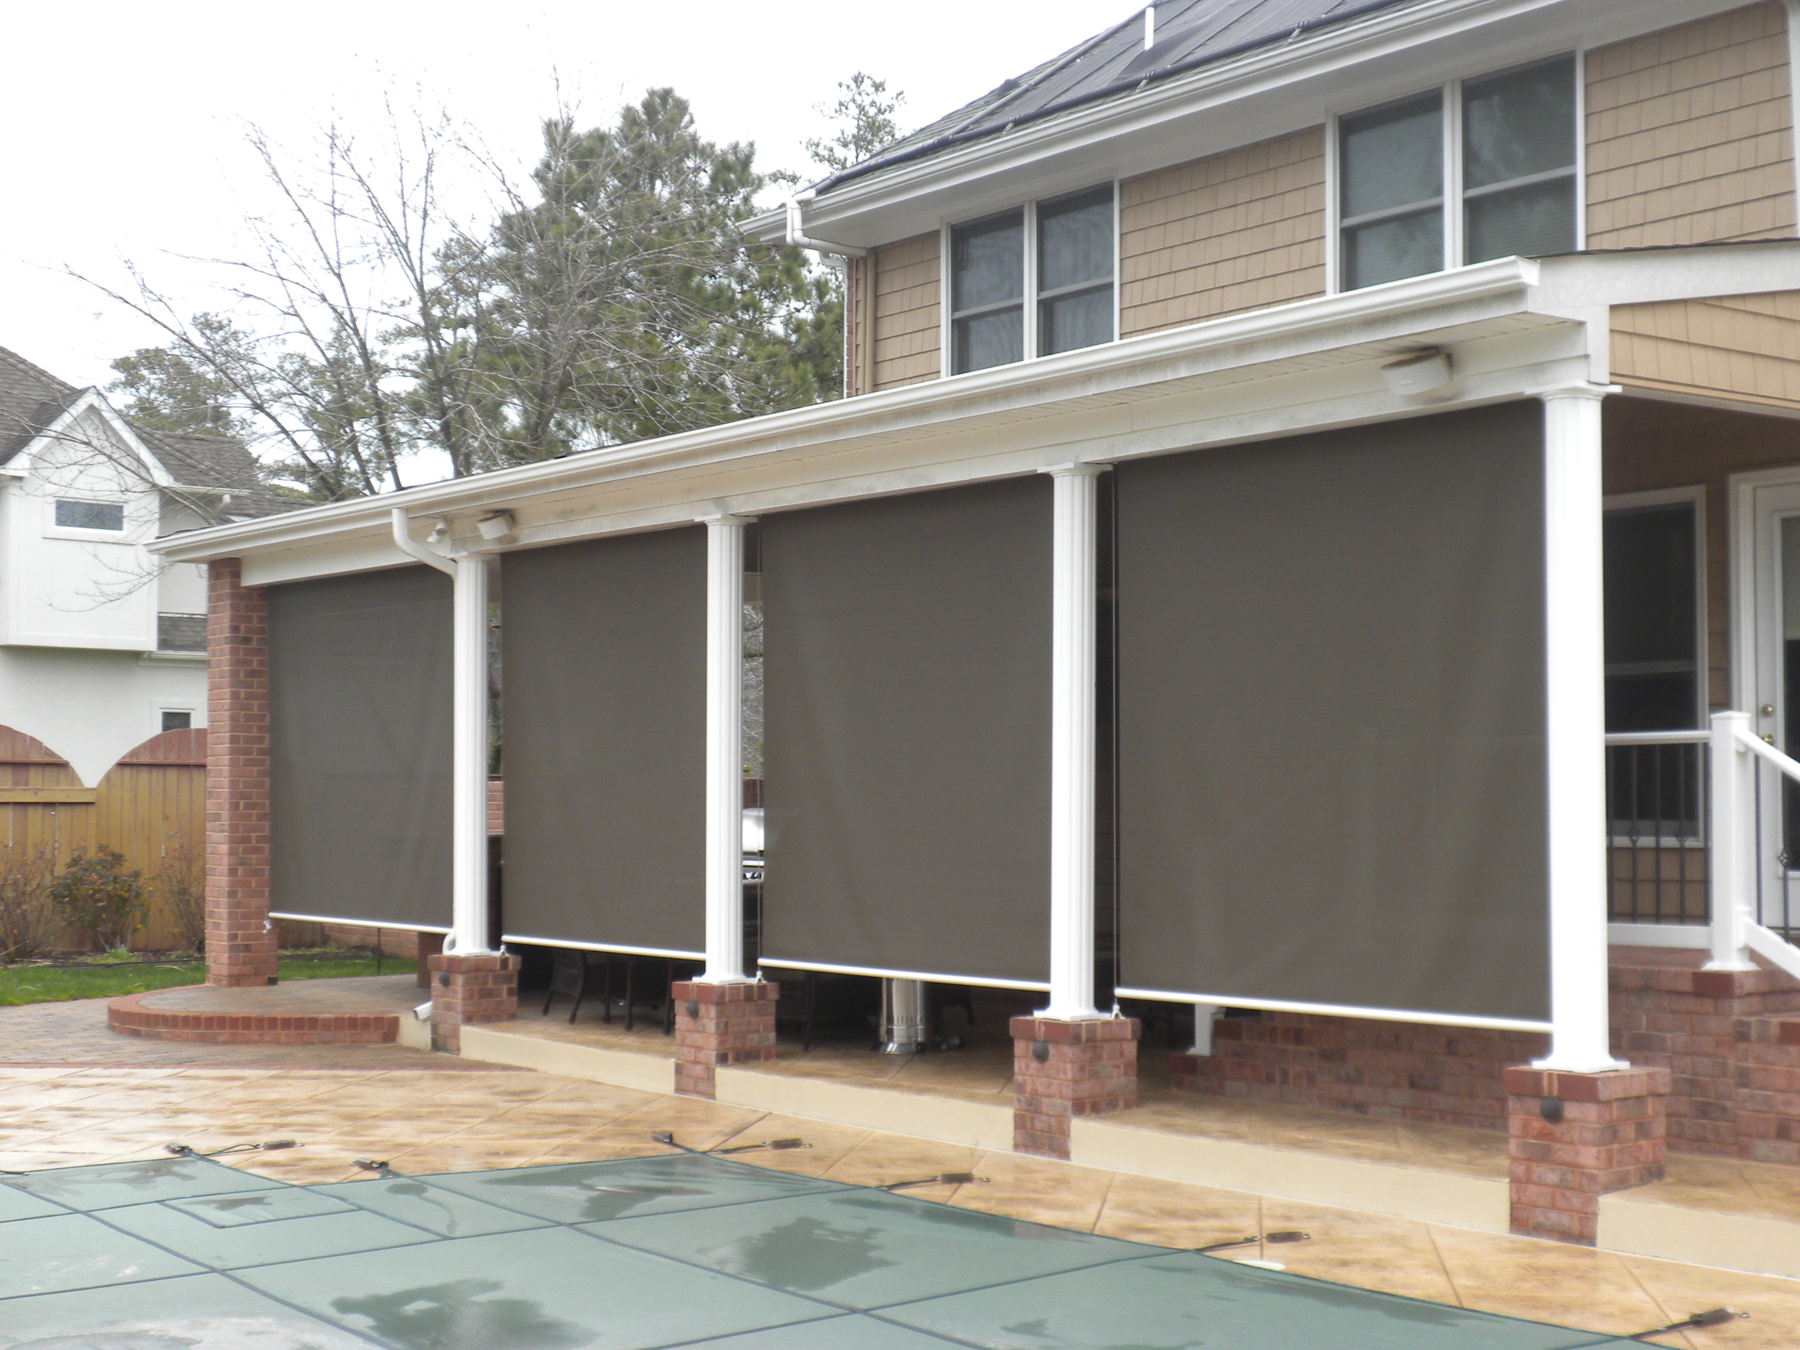 EXTERIOR SOLAR SHADES BY BETTERLIVING SUNROOMS U0026 AWNINGS OF PITTSBURGH